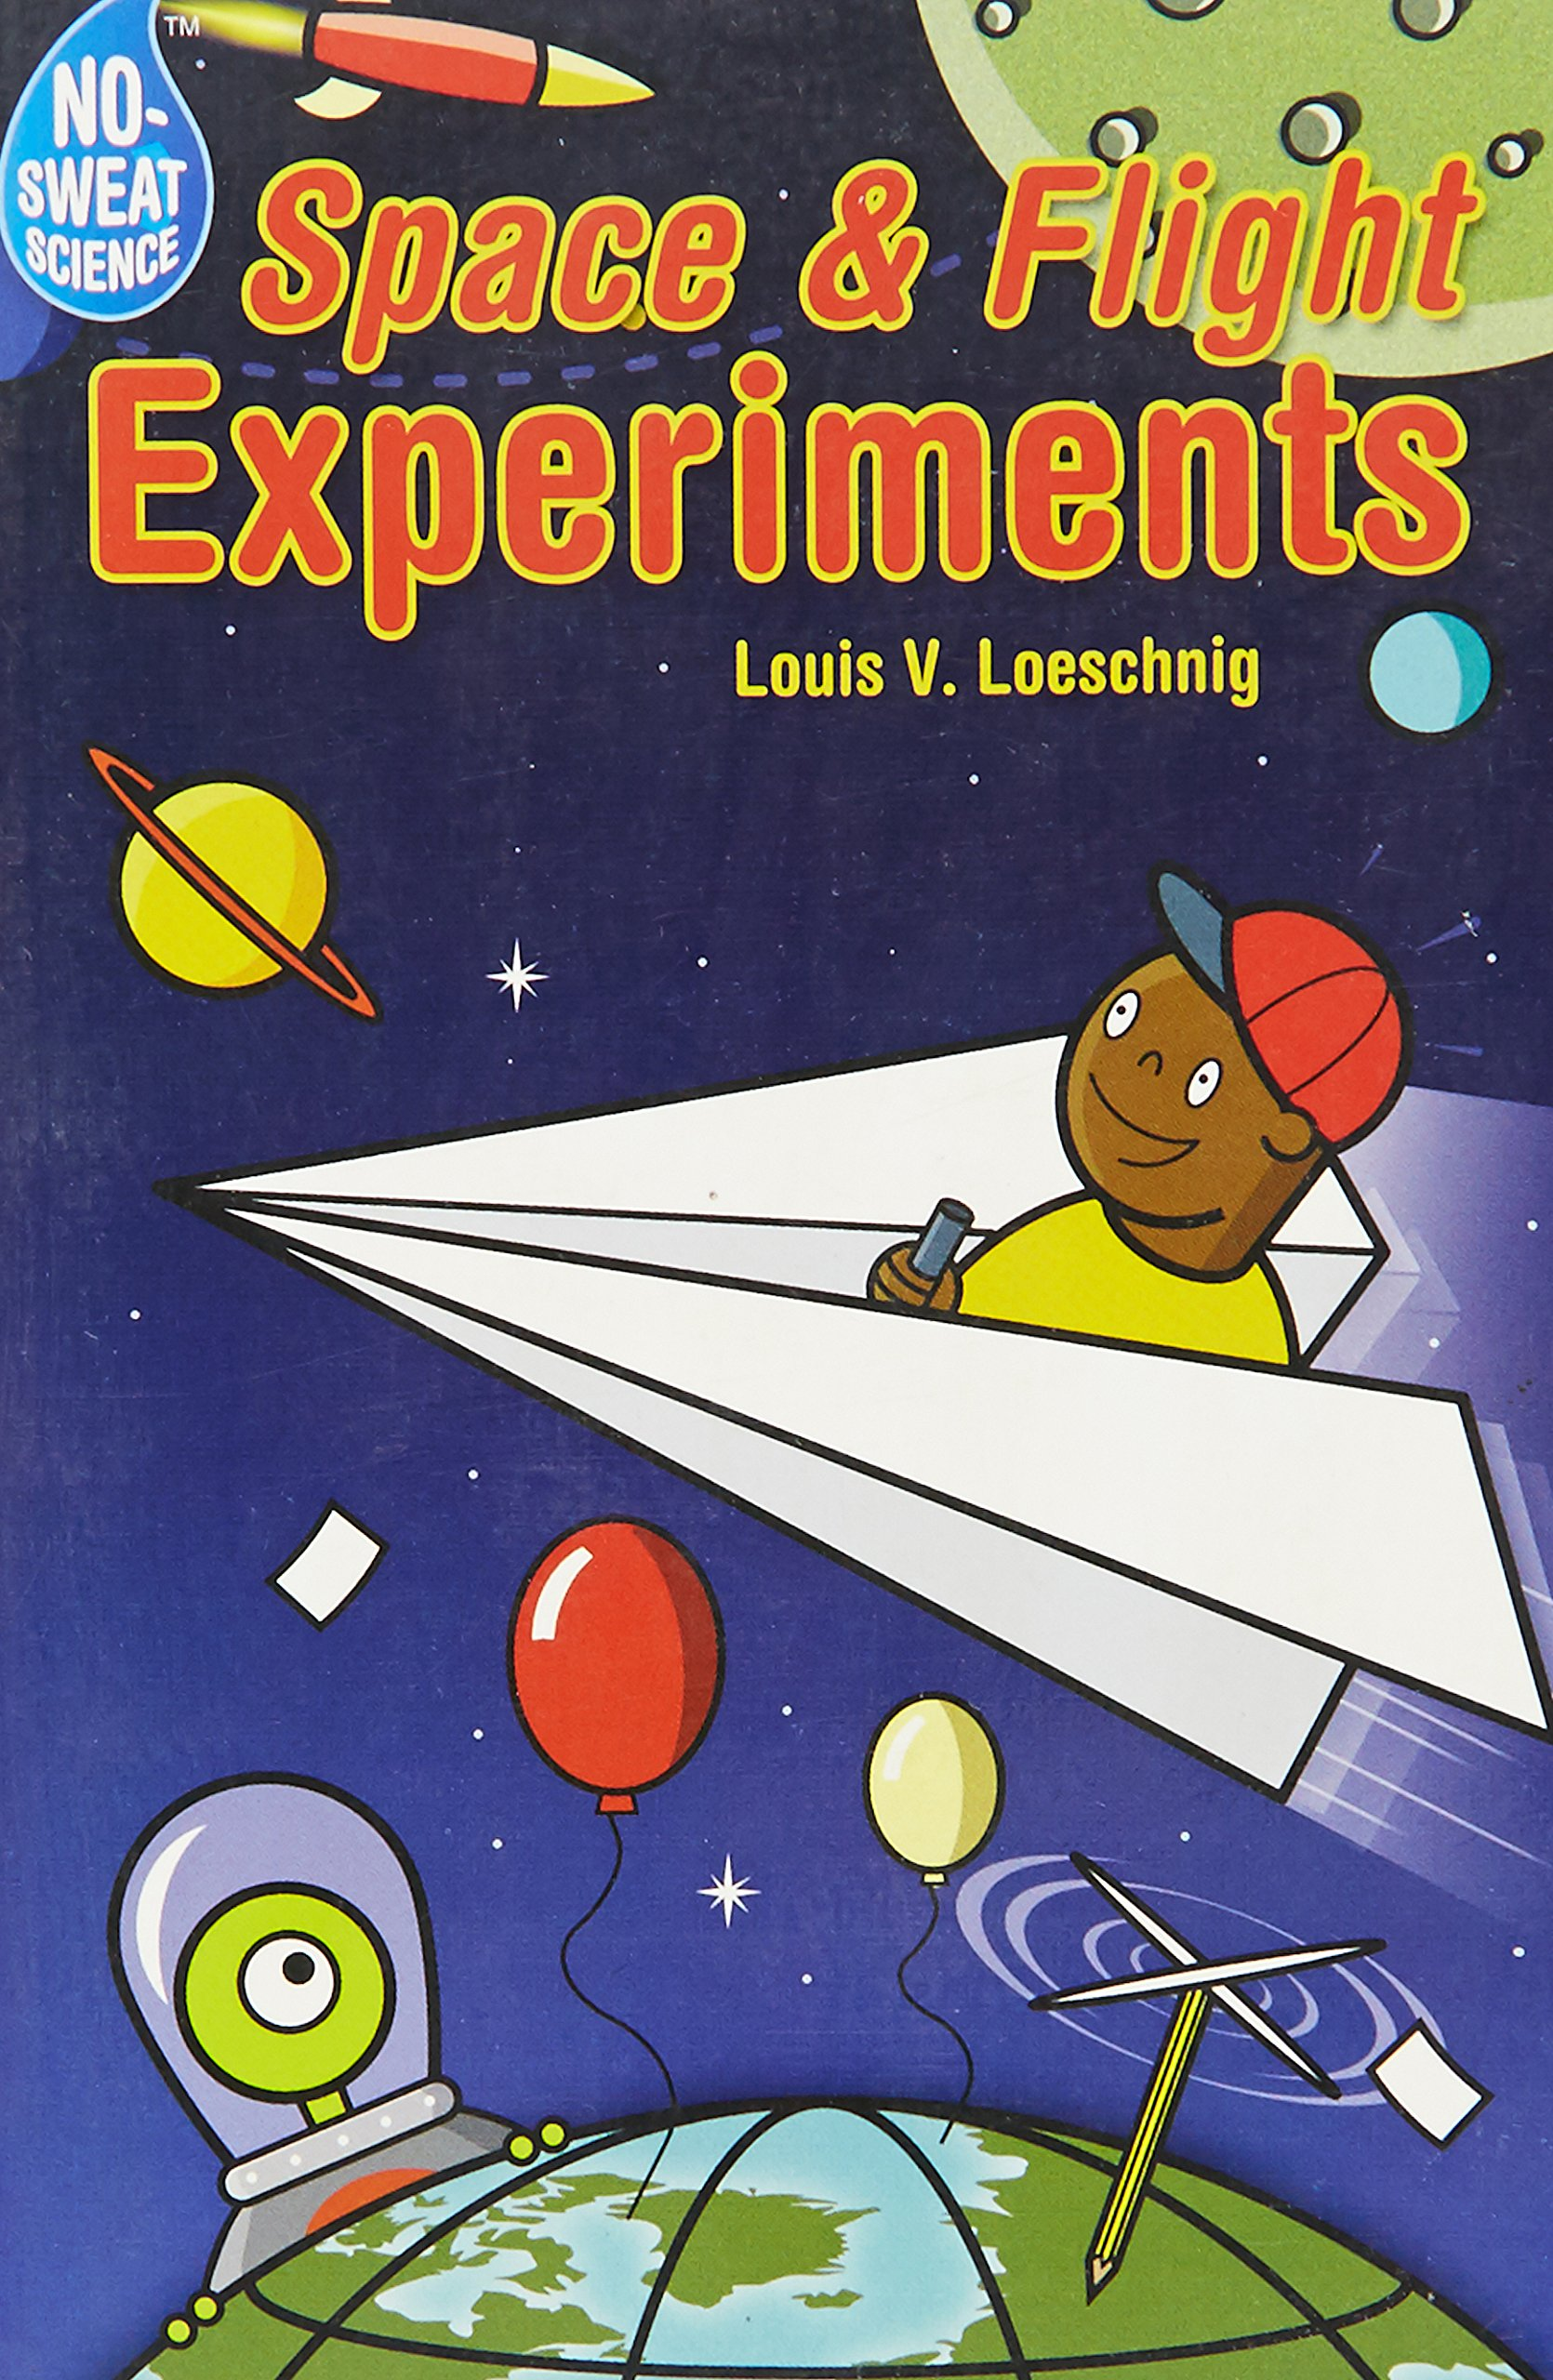 No-Sweat Science®: Space & Flight Experiments